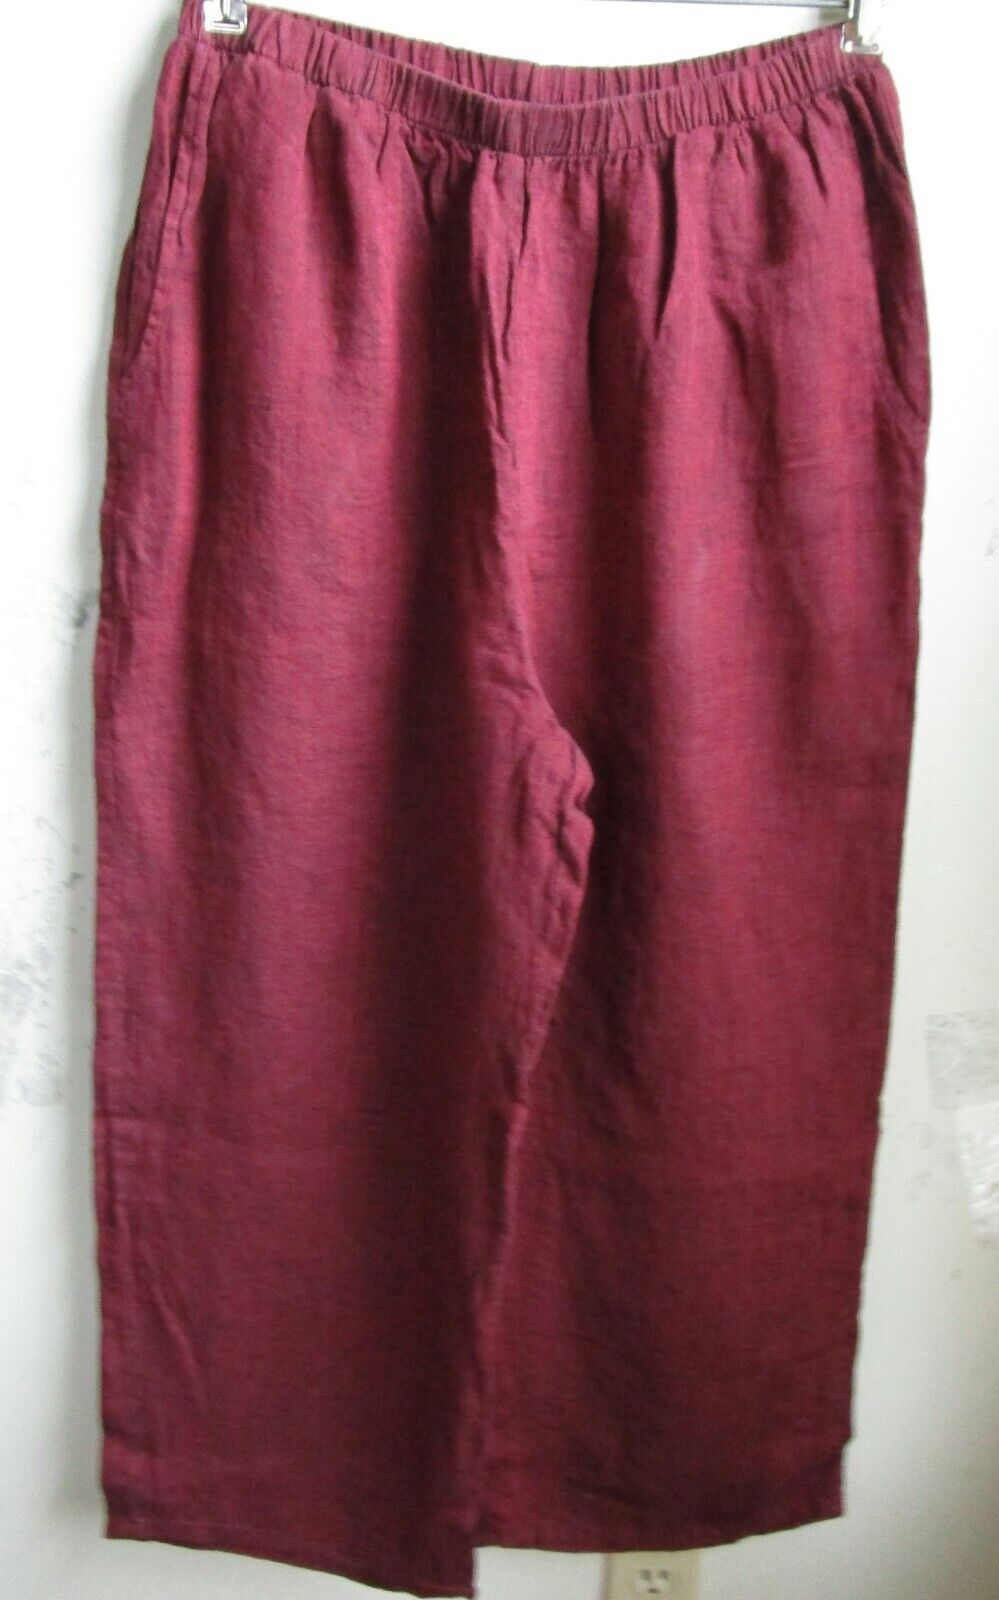 FLAX Designs   LINEN PANTS   3G   NWOT   Floods Cropped Pants  OXBLOOD